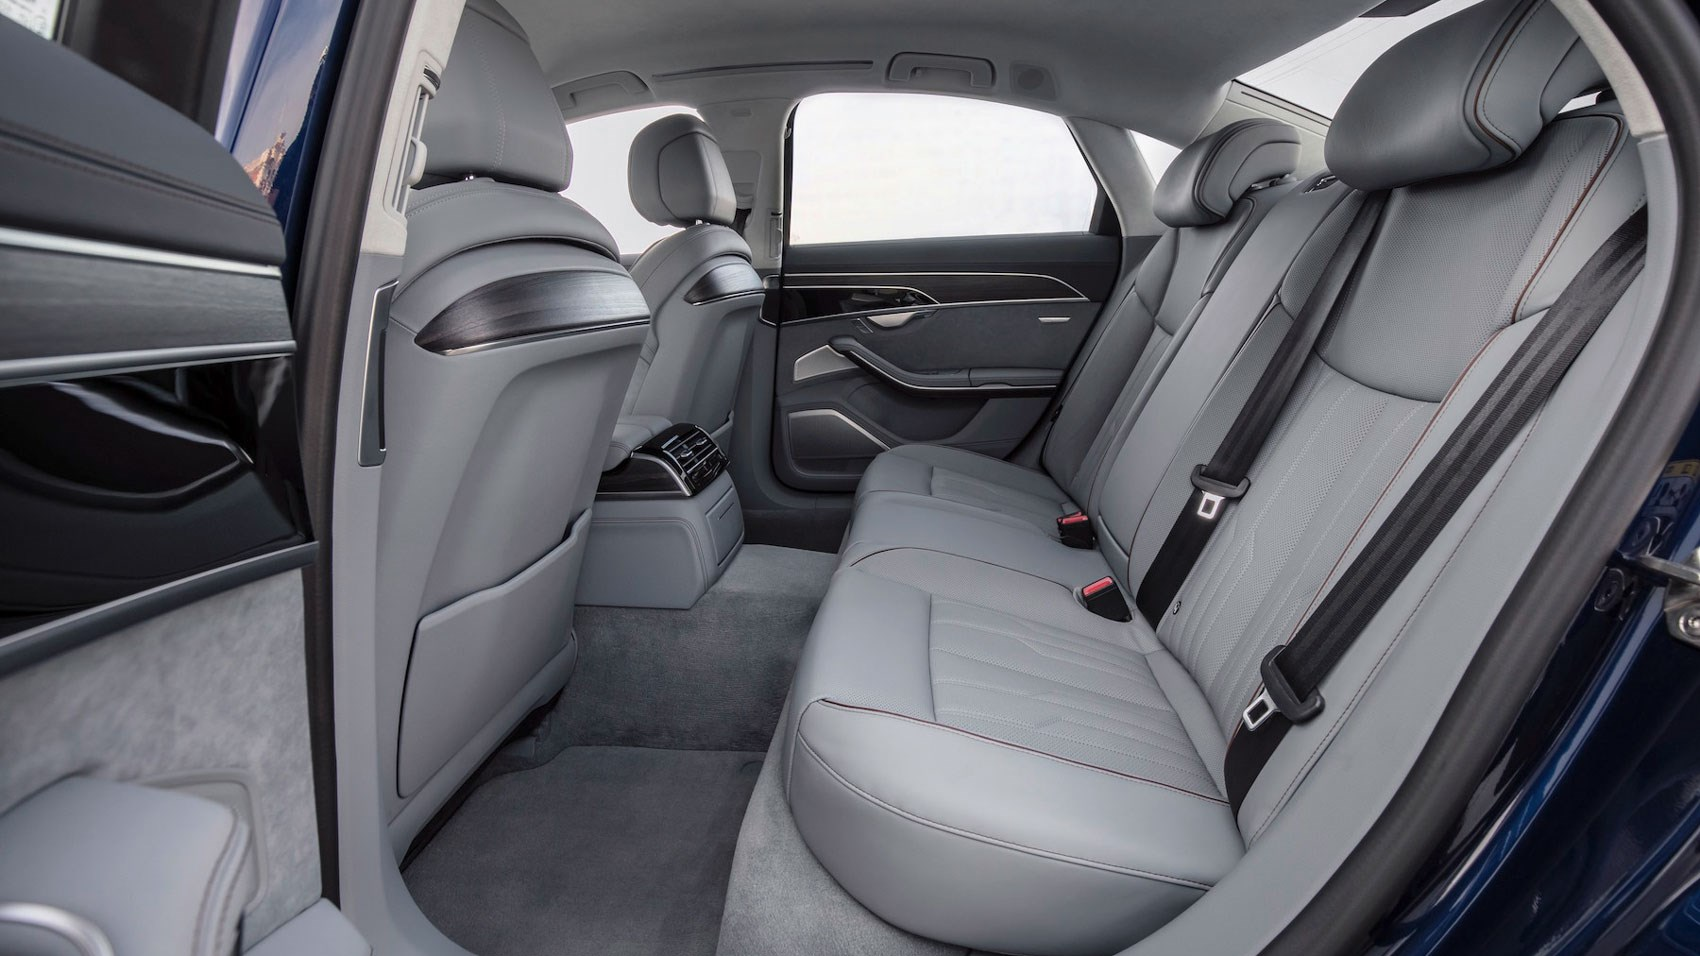 Audi A8 SWB rear seats